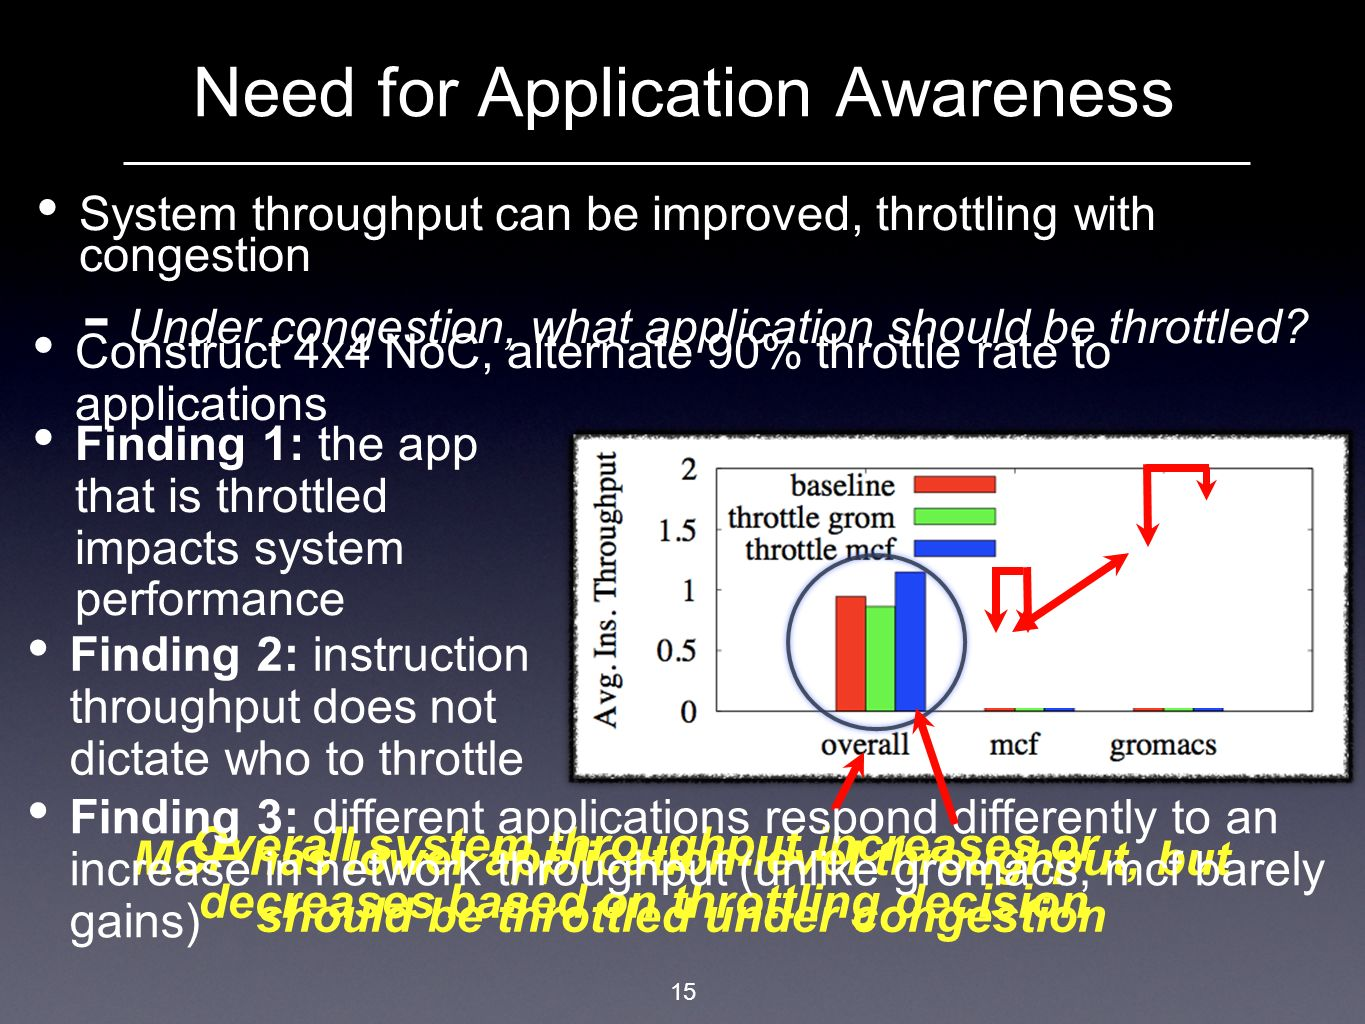 Need for Application Awareness